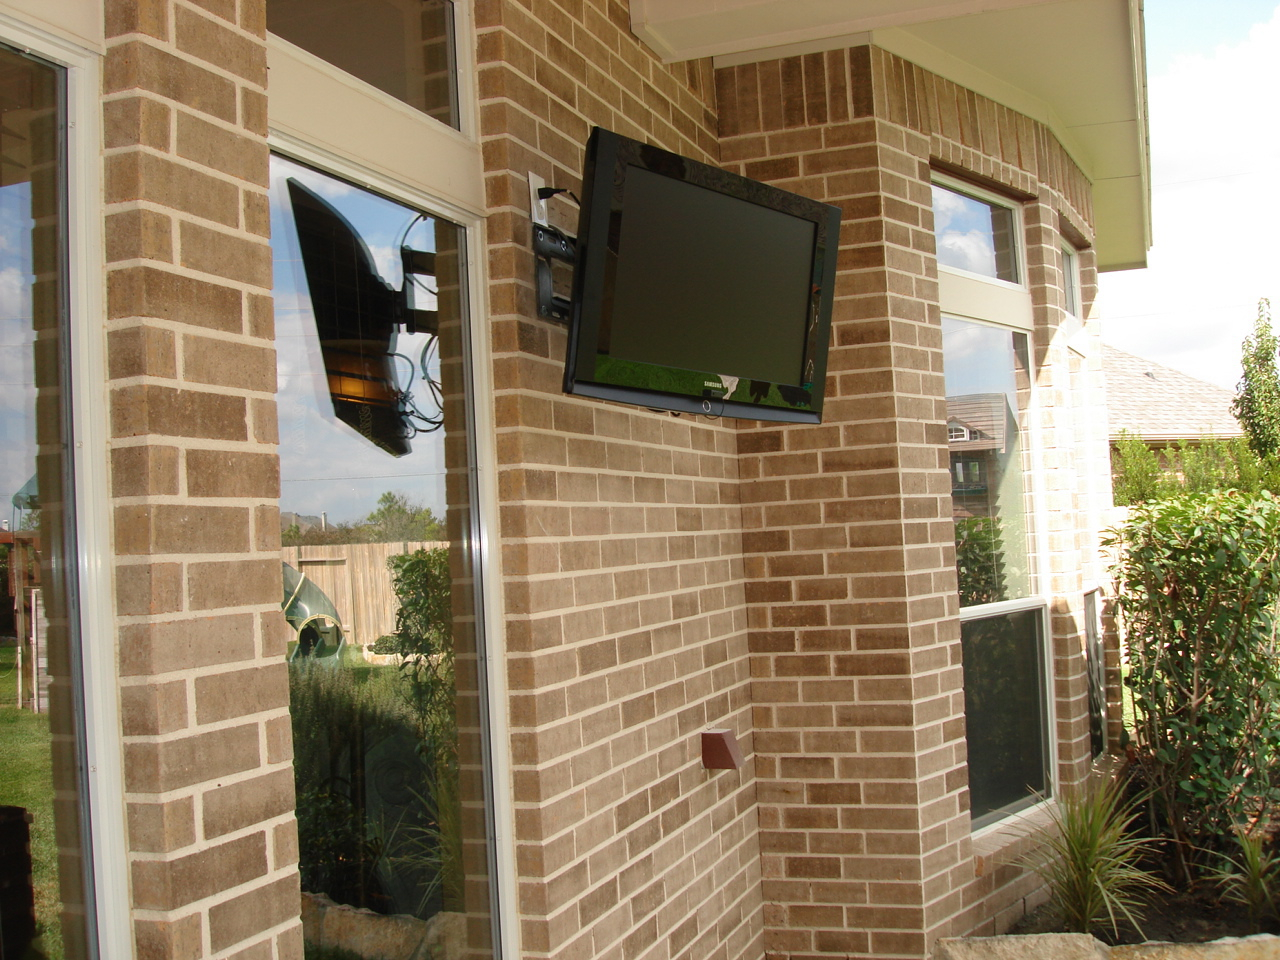 Bar Furniture Patio Tv Outdoor Mounts Icamblog Dsc04254 Within Dimensions 1280 X 960